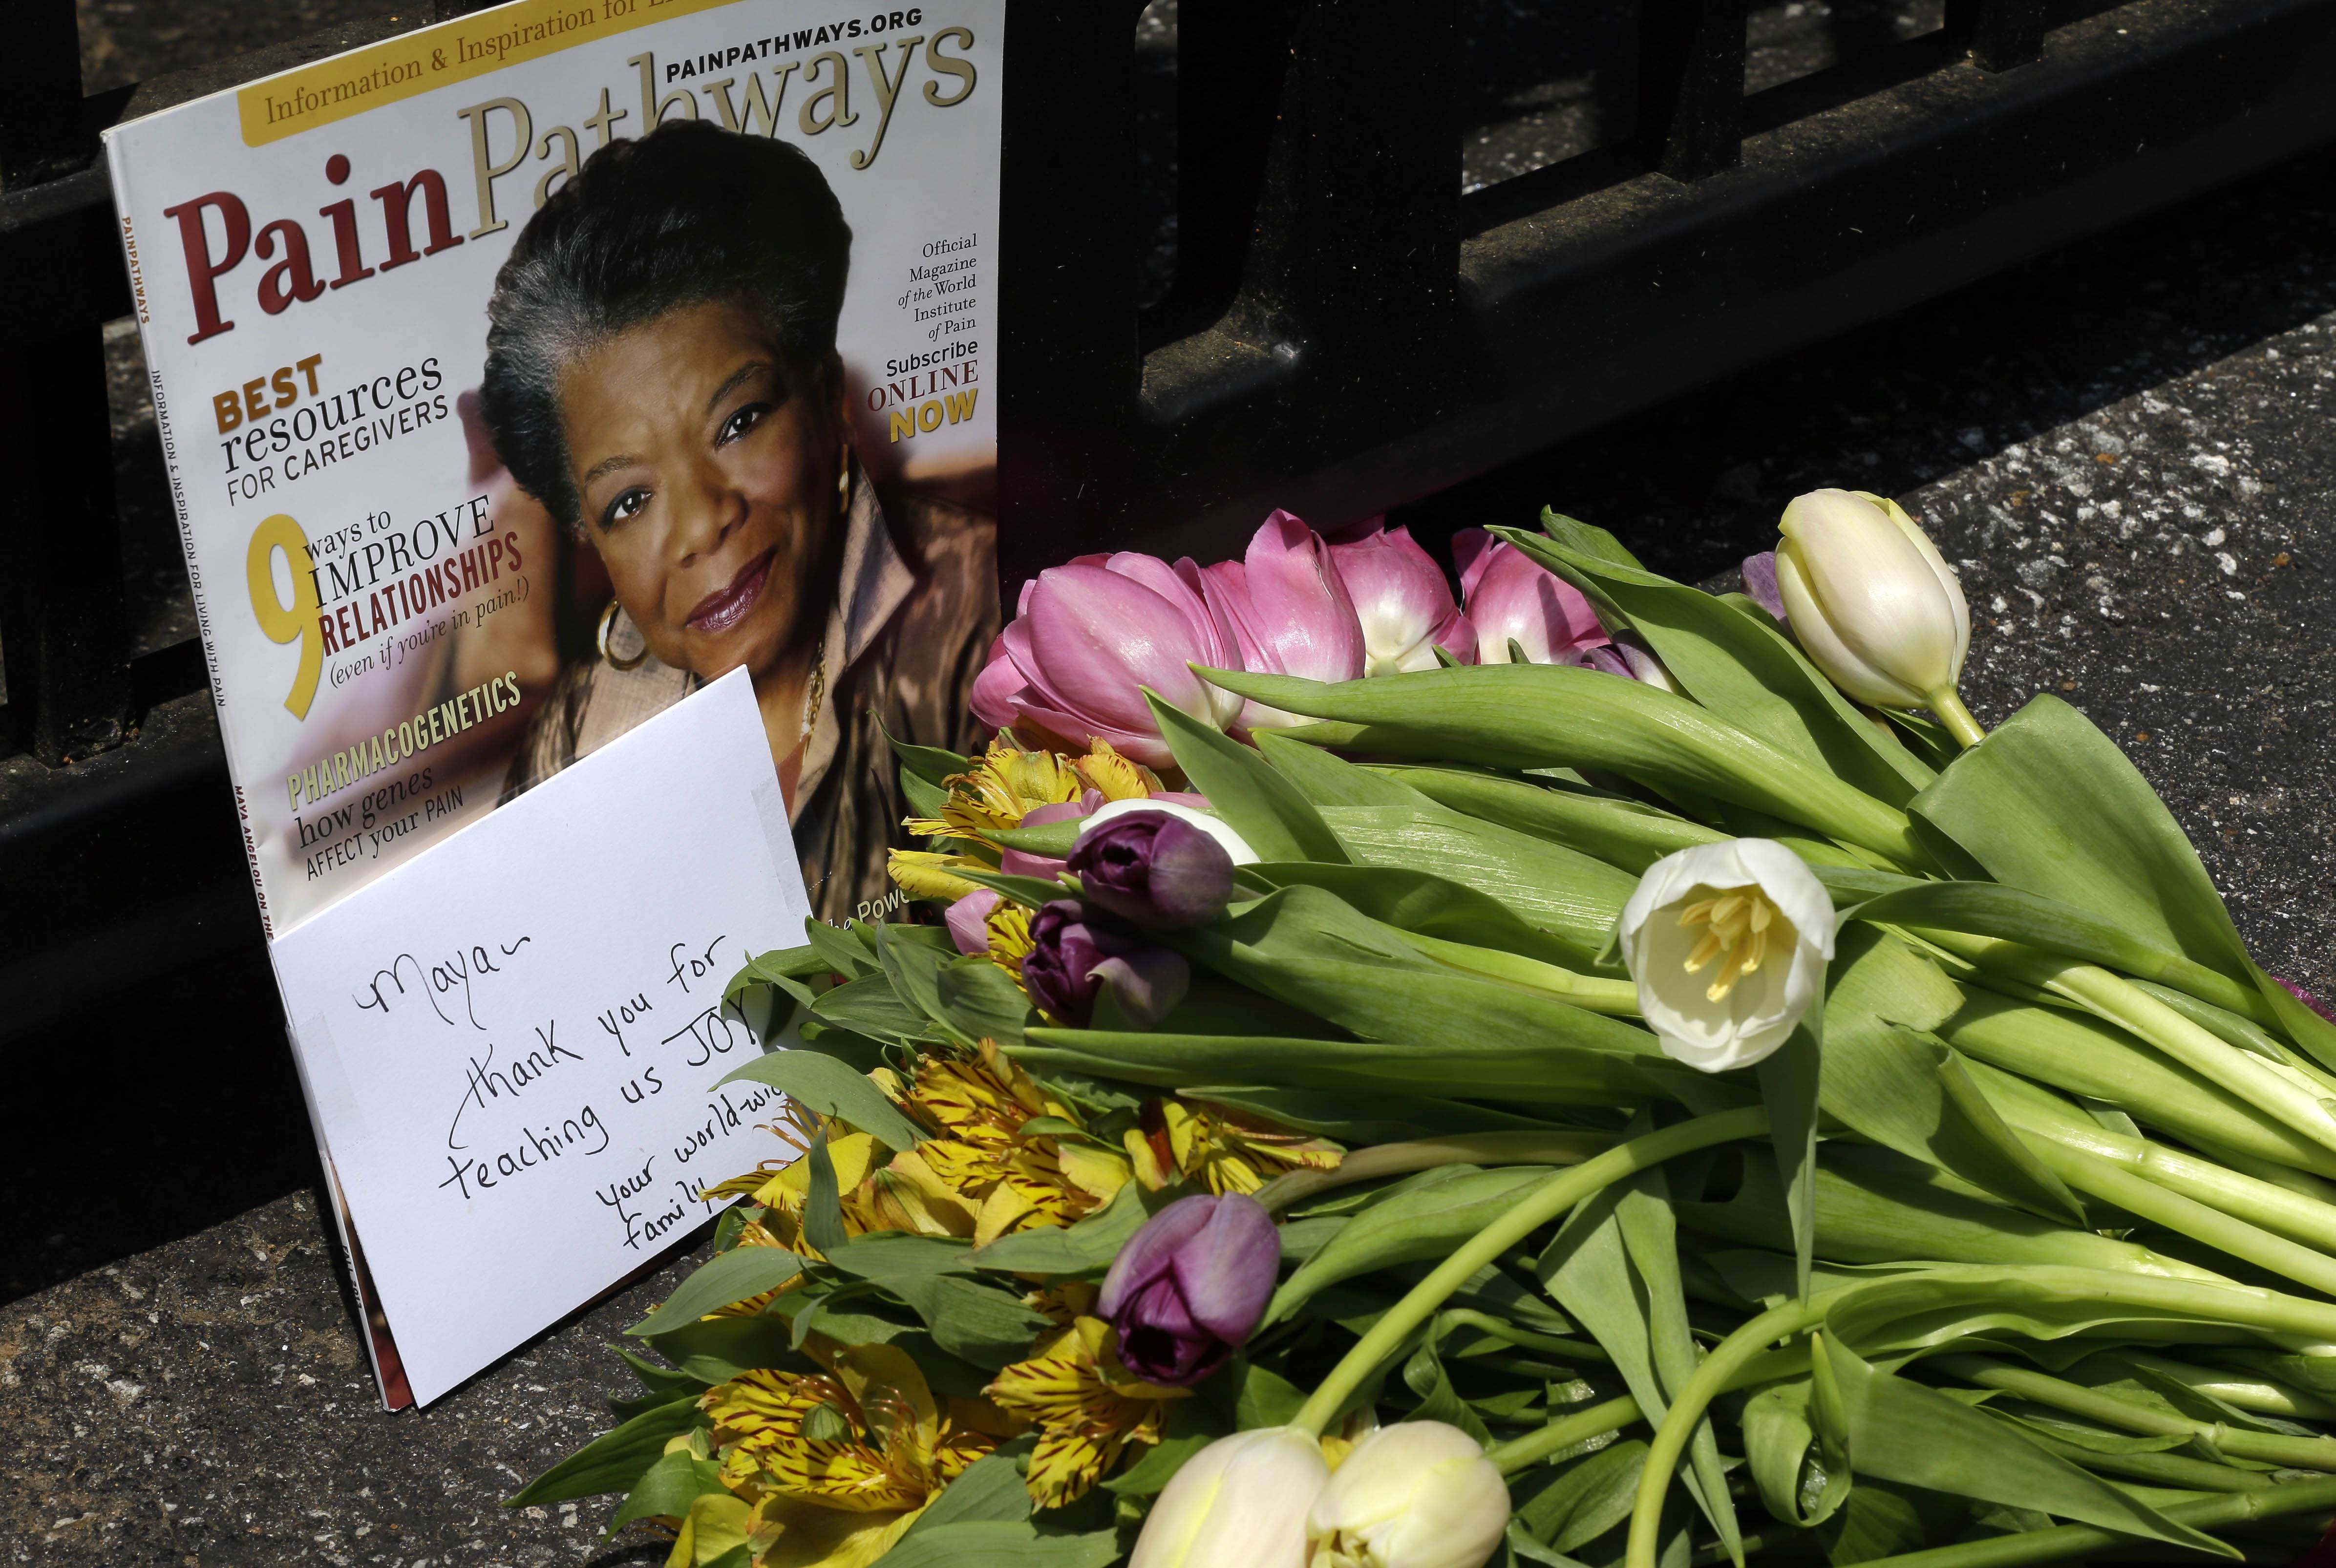 A bouquet of flowers and a magazine showing Maya Angelou on the cover lies outside a gate at the home of Angelou in Winston-Salem, N.C., Wednesday, May 28, 2014. Angelou, a Renaissance woman and cultural pioneer, has died, Wake Forest University said in a statement Wednesday. She was 86.